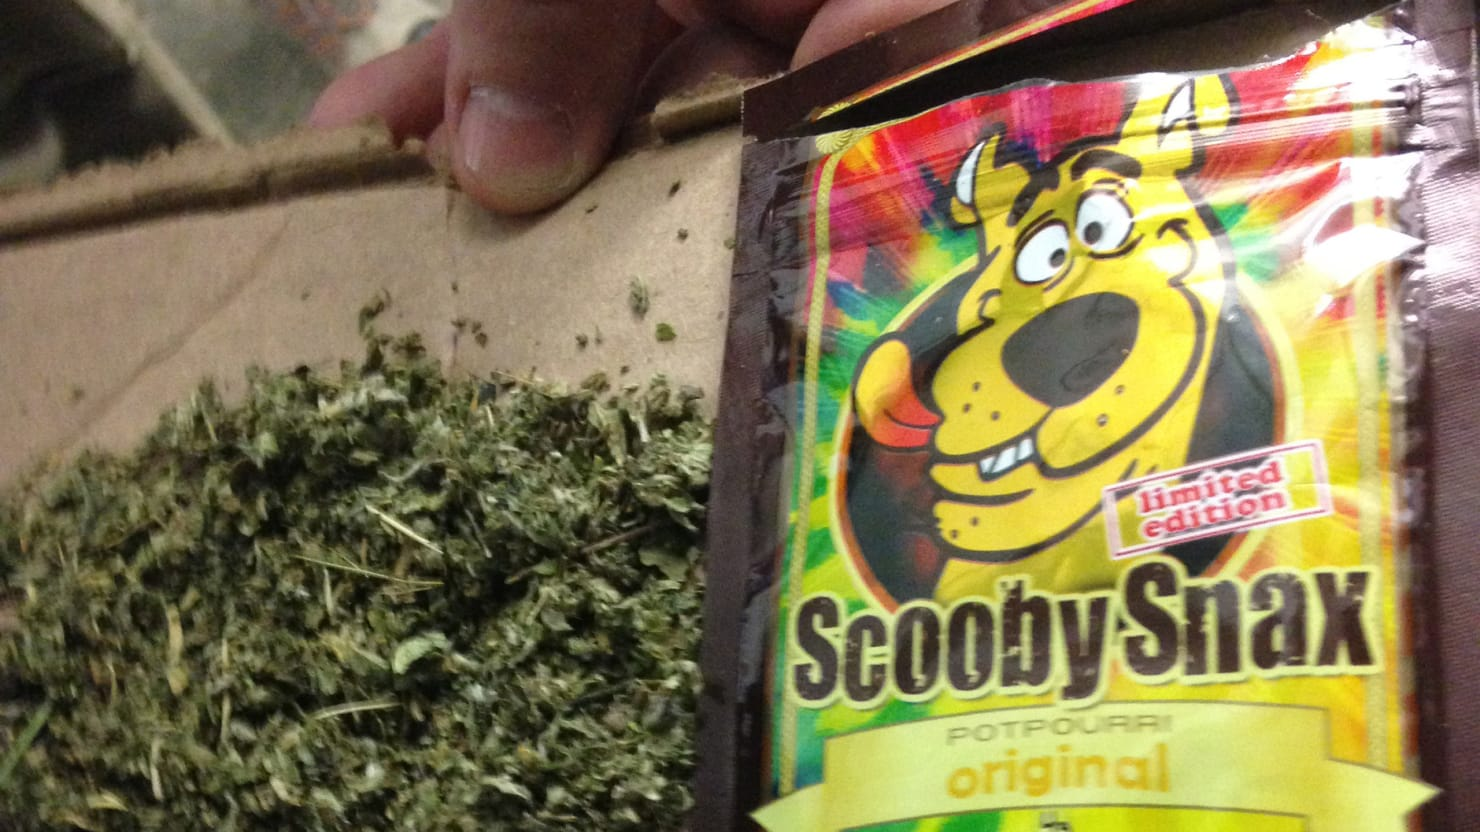 Synthetic Pot Sends Hundreds to the ER foto